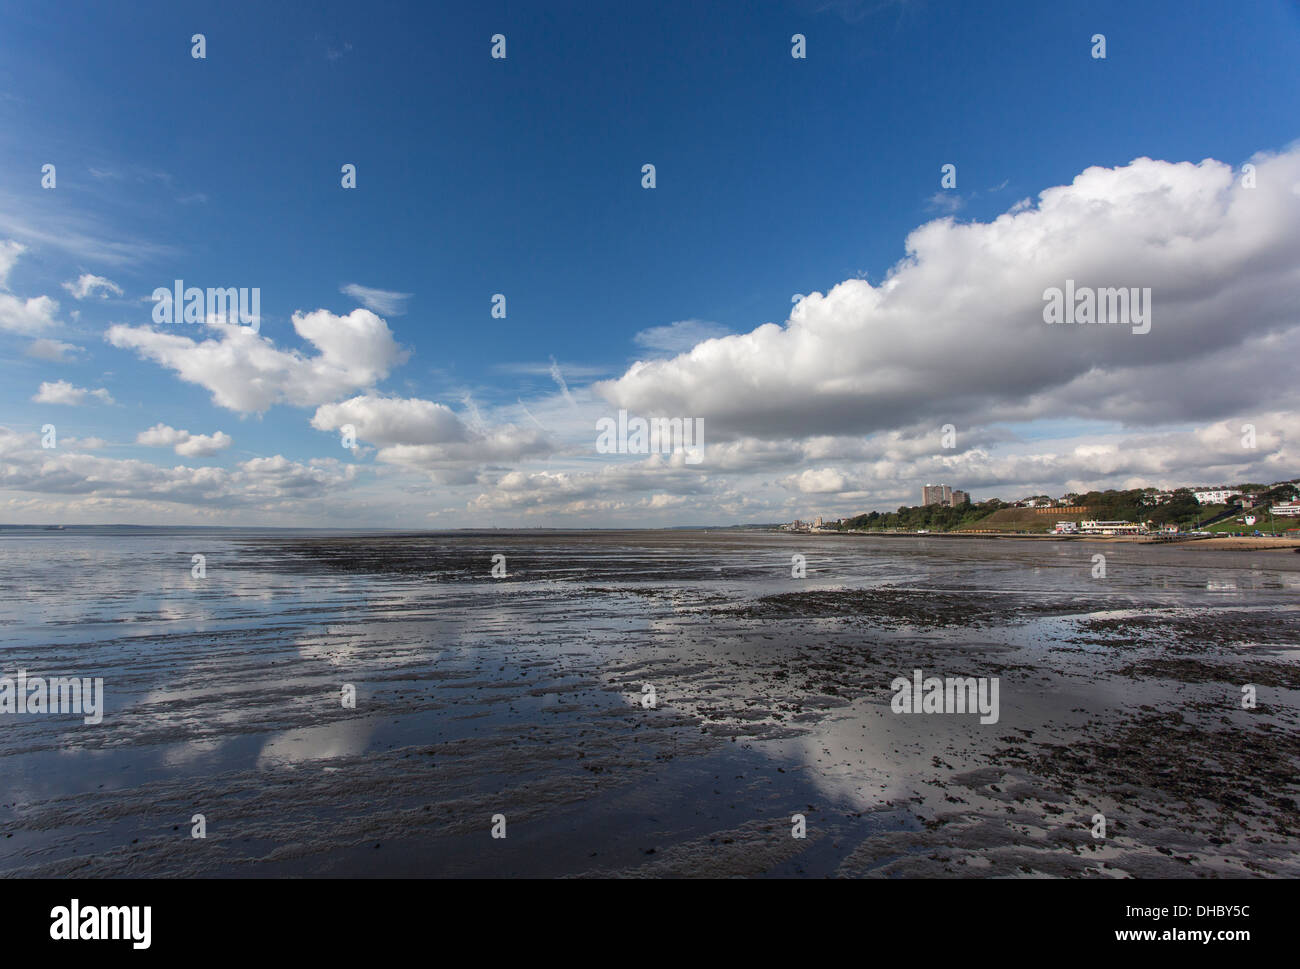 12/10/2013 View from Southend pier of Southend-On-Sea and Westcliff-On-Sea. Stock Photo